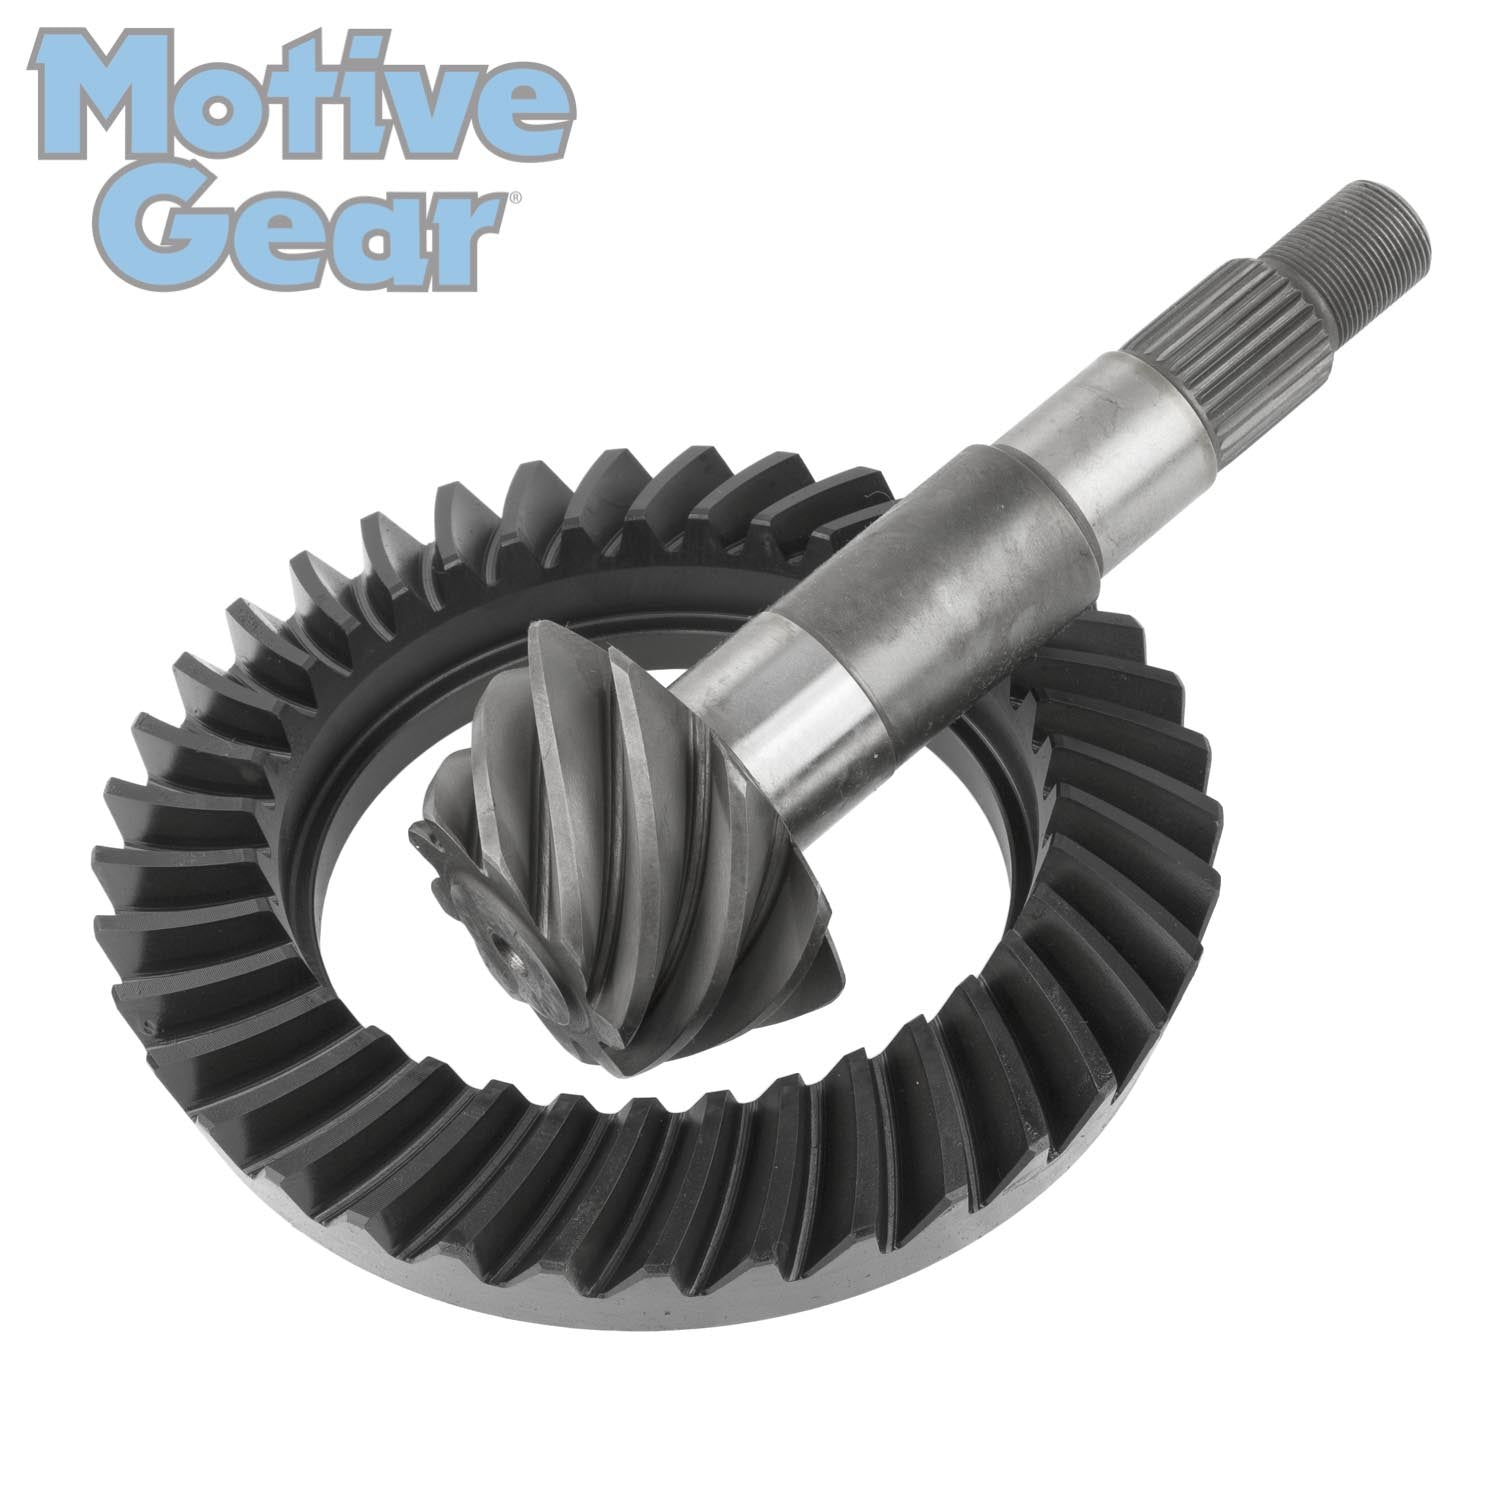 Dana 35 Motive Gear Ring and Pinion Gear Set